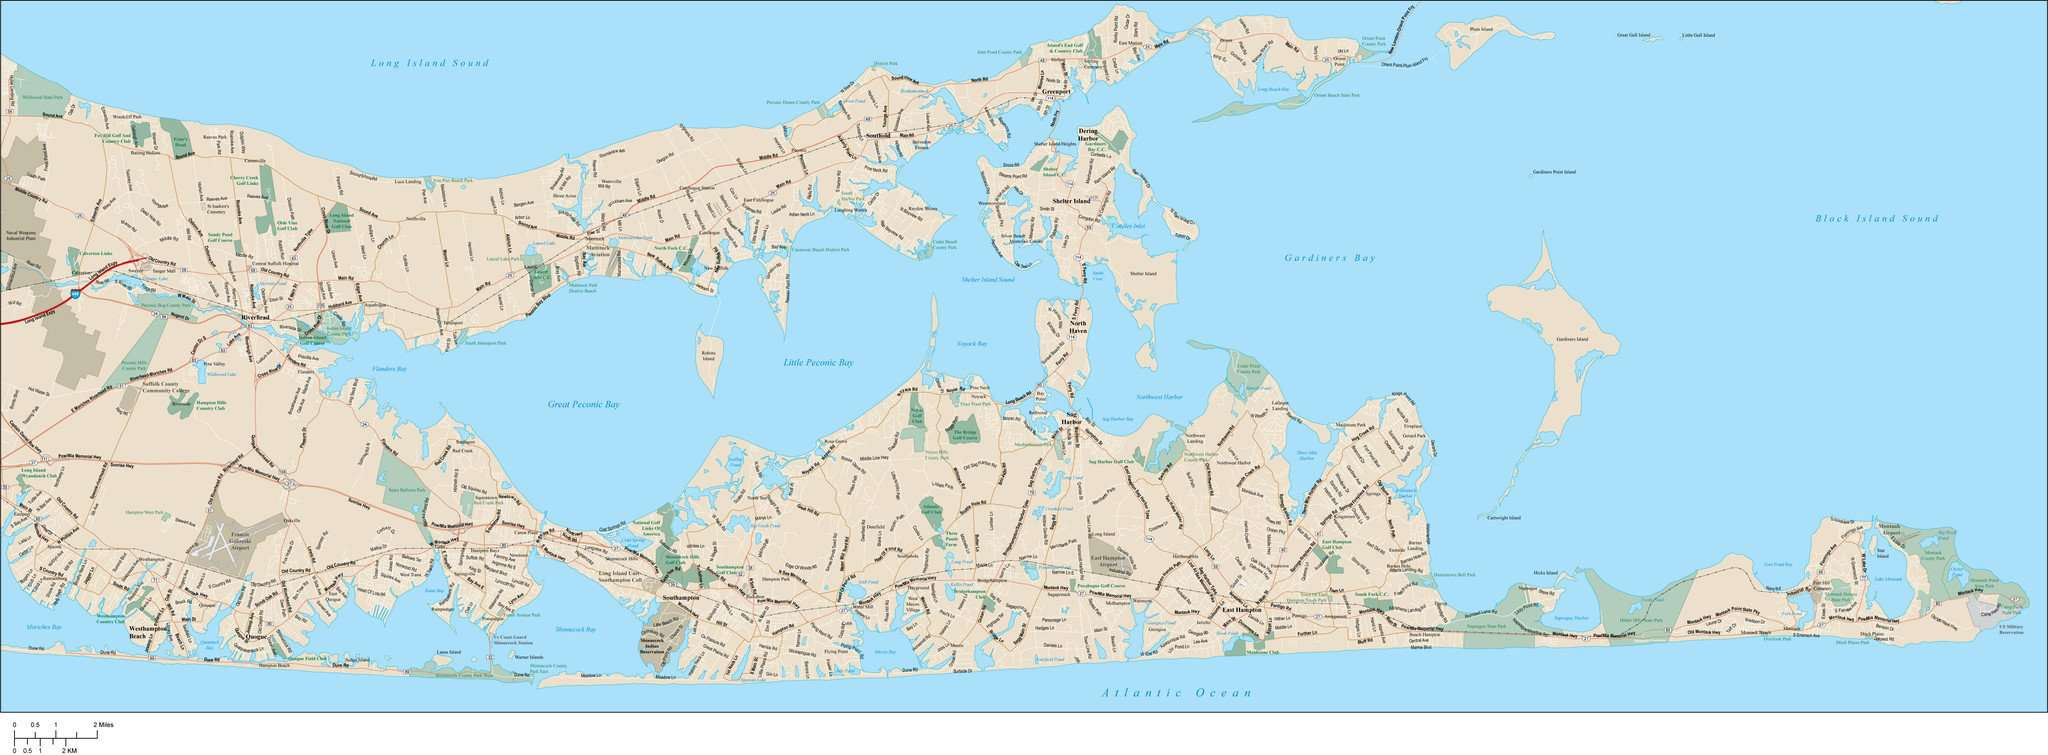 Hamptons Long Island NY Map with All Local Streets on britannia map, parkland map, hudson valley area map, montauk map, oakridge map, fire island, huntington map, long island, woodlands map, sag harbor, jill flint, new york map, brentwood map, harlem map, water mill, sundance map, new rochelle map, east hampton, southampton map, somerset map, langley afb housing map, richmond map, bayview map, soho map, long island map, fire island map,